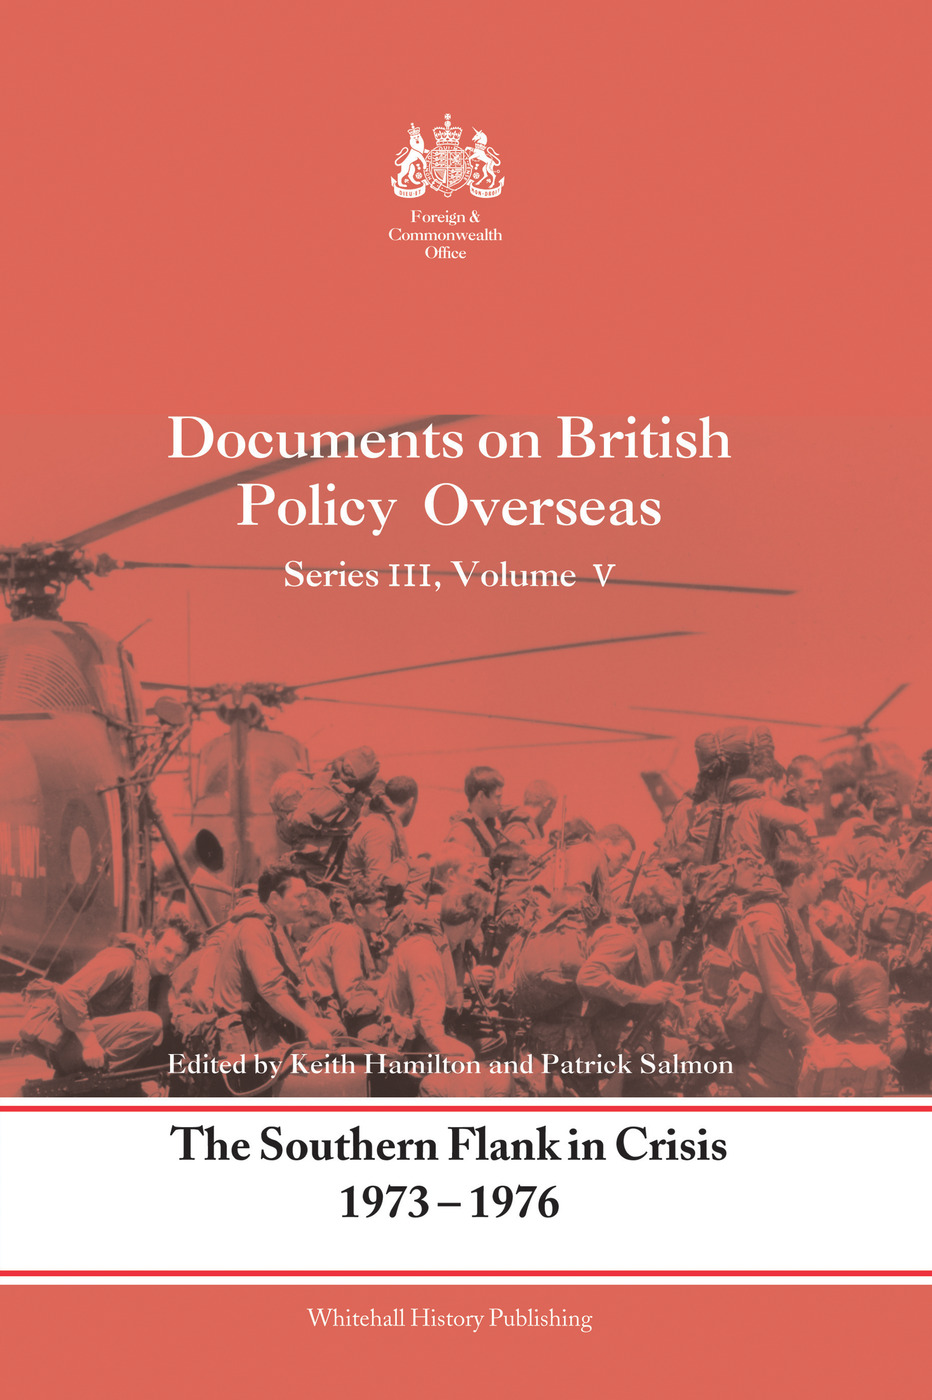 The Southern Flank in Crisis, 1973-1976: Series III, Volume V: Documents on British Policy Overseas, 1st Edition (Paperback) book cover